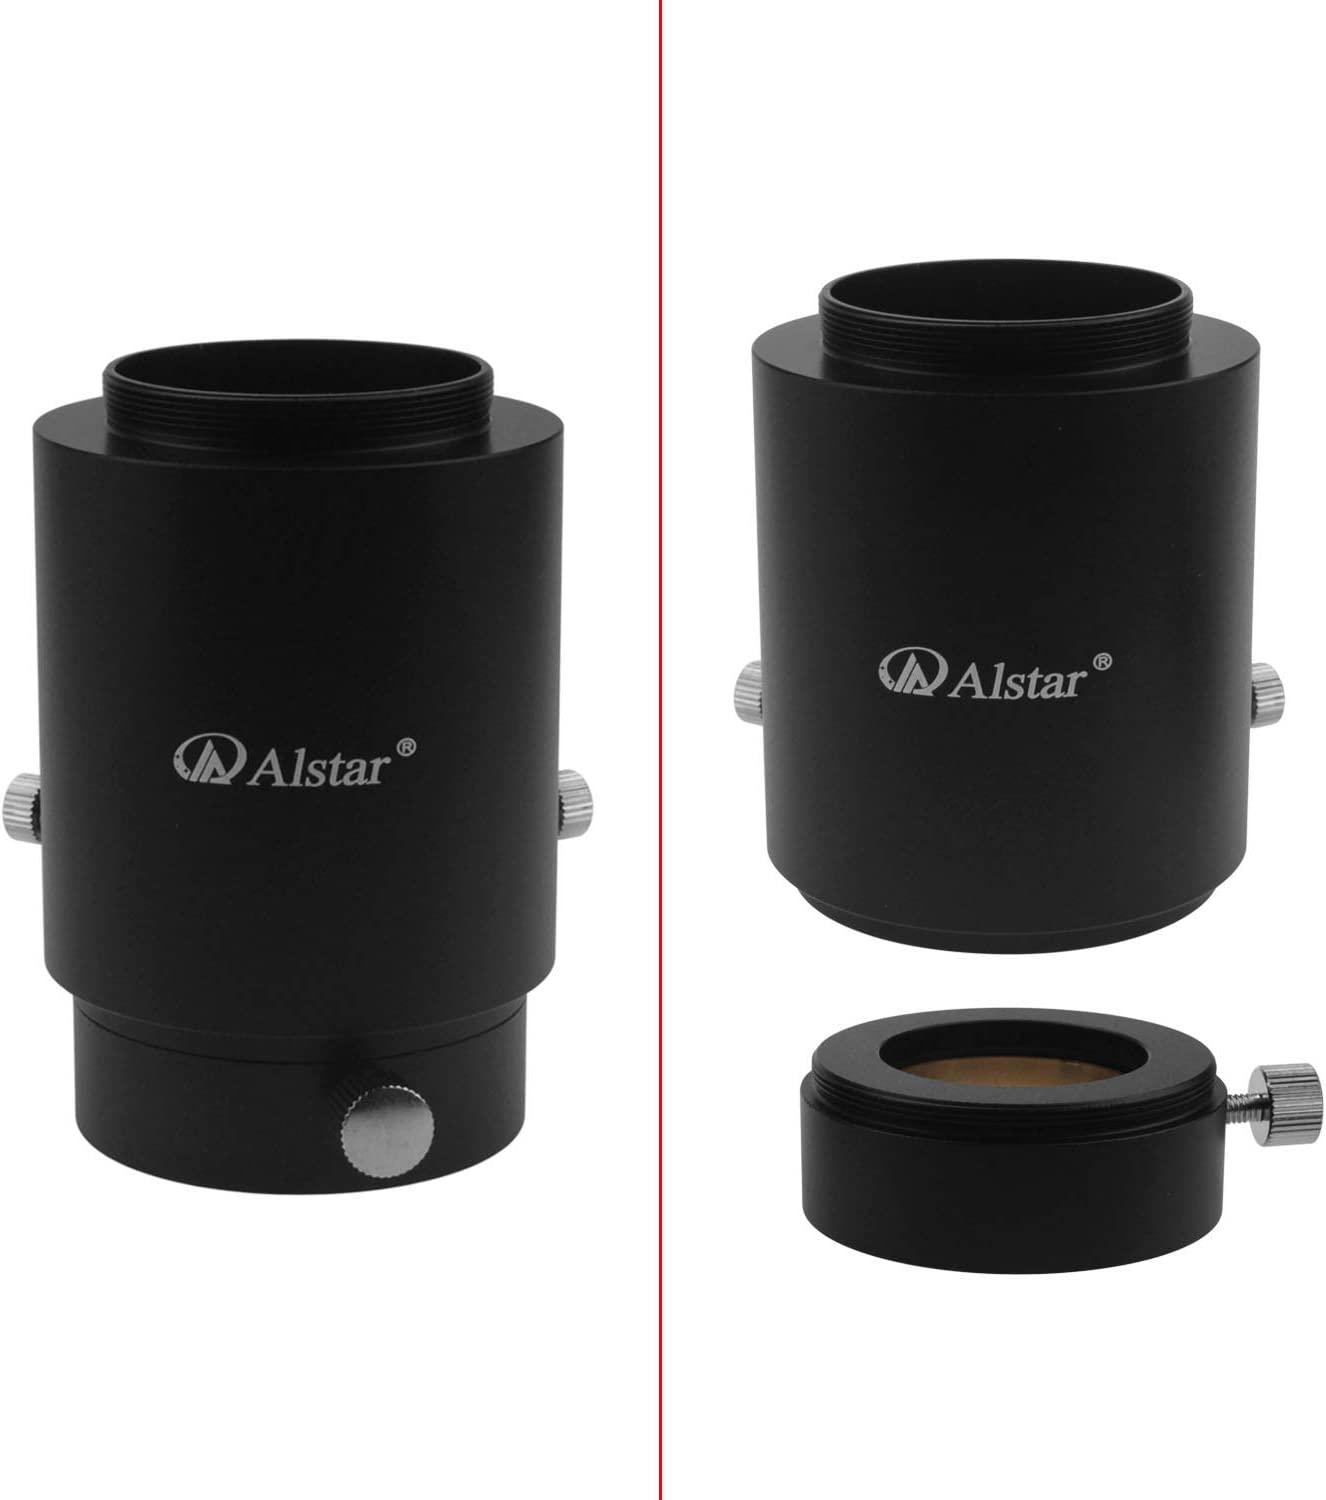 Alstar 2 Adjustable Extention Tube Camera Adapter Adjustable Length Adapter Lets You Attach A T-Ring Equipped DSLR Or SLR Camera Directly to Your Telescope